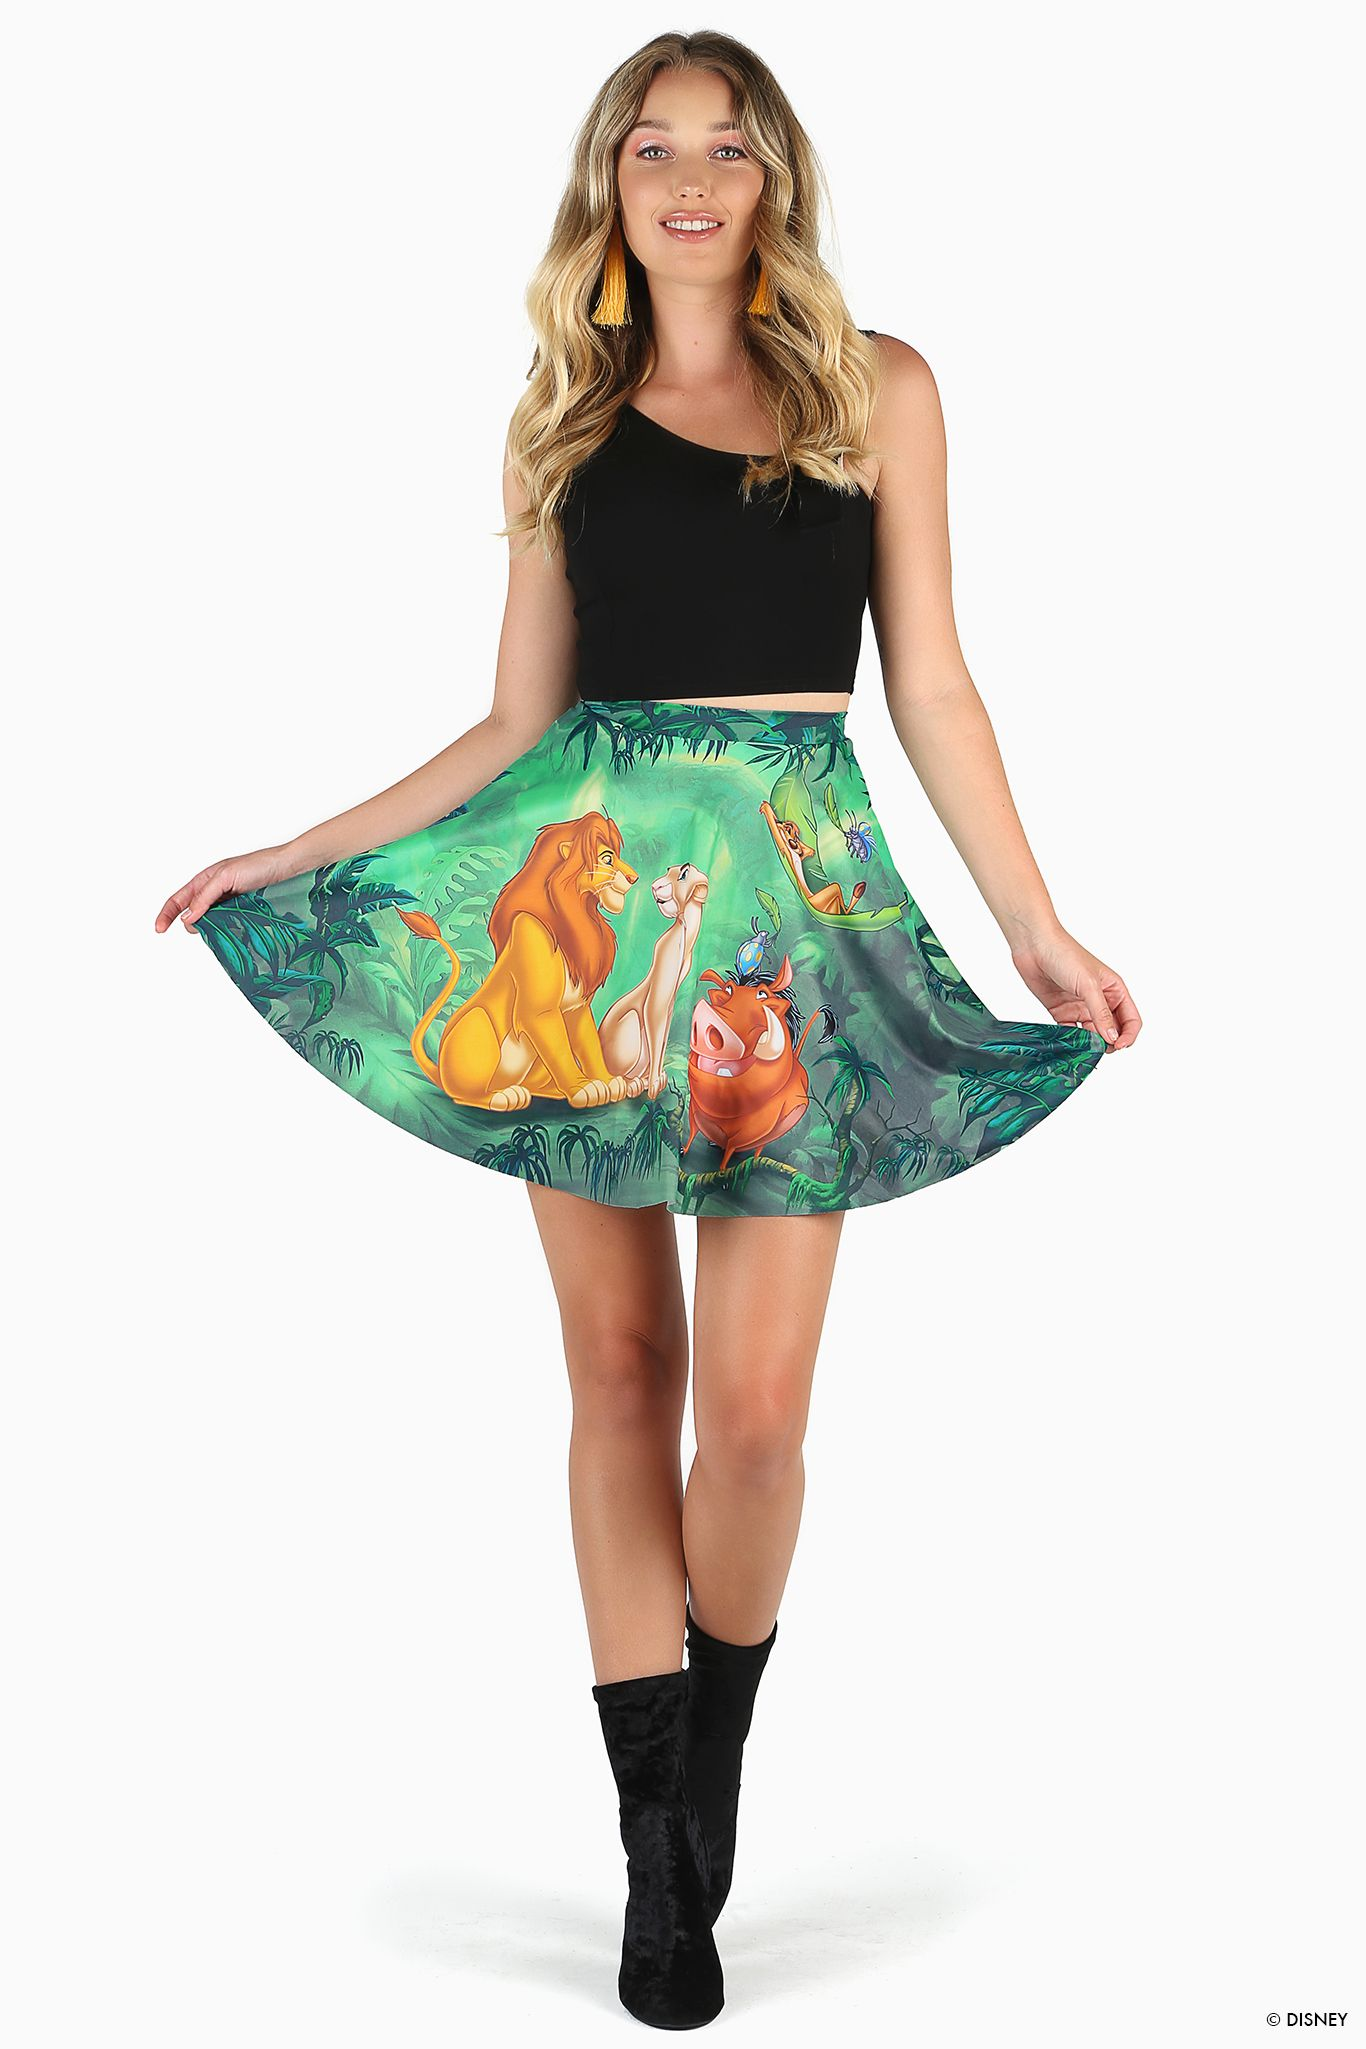 028ada3eb Lion King Pocket Skater Skirt – 7 DAY UNLIMITED ($85AUD) by BlackMilk  Clothing